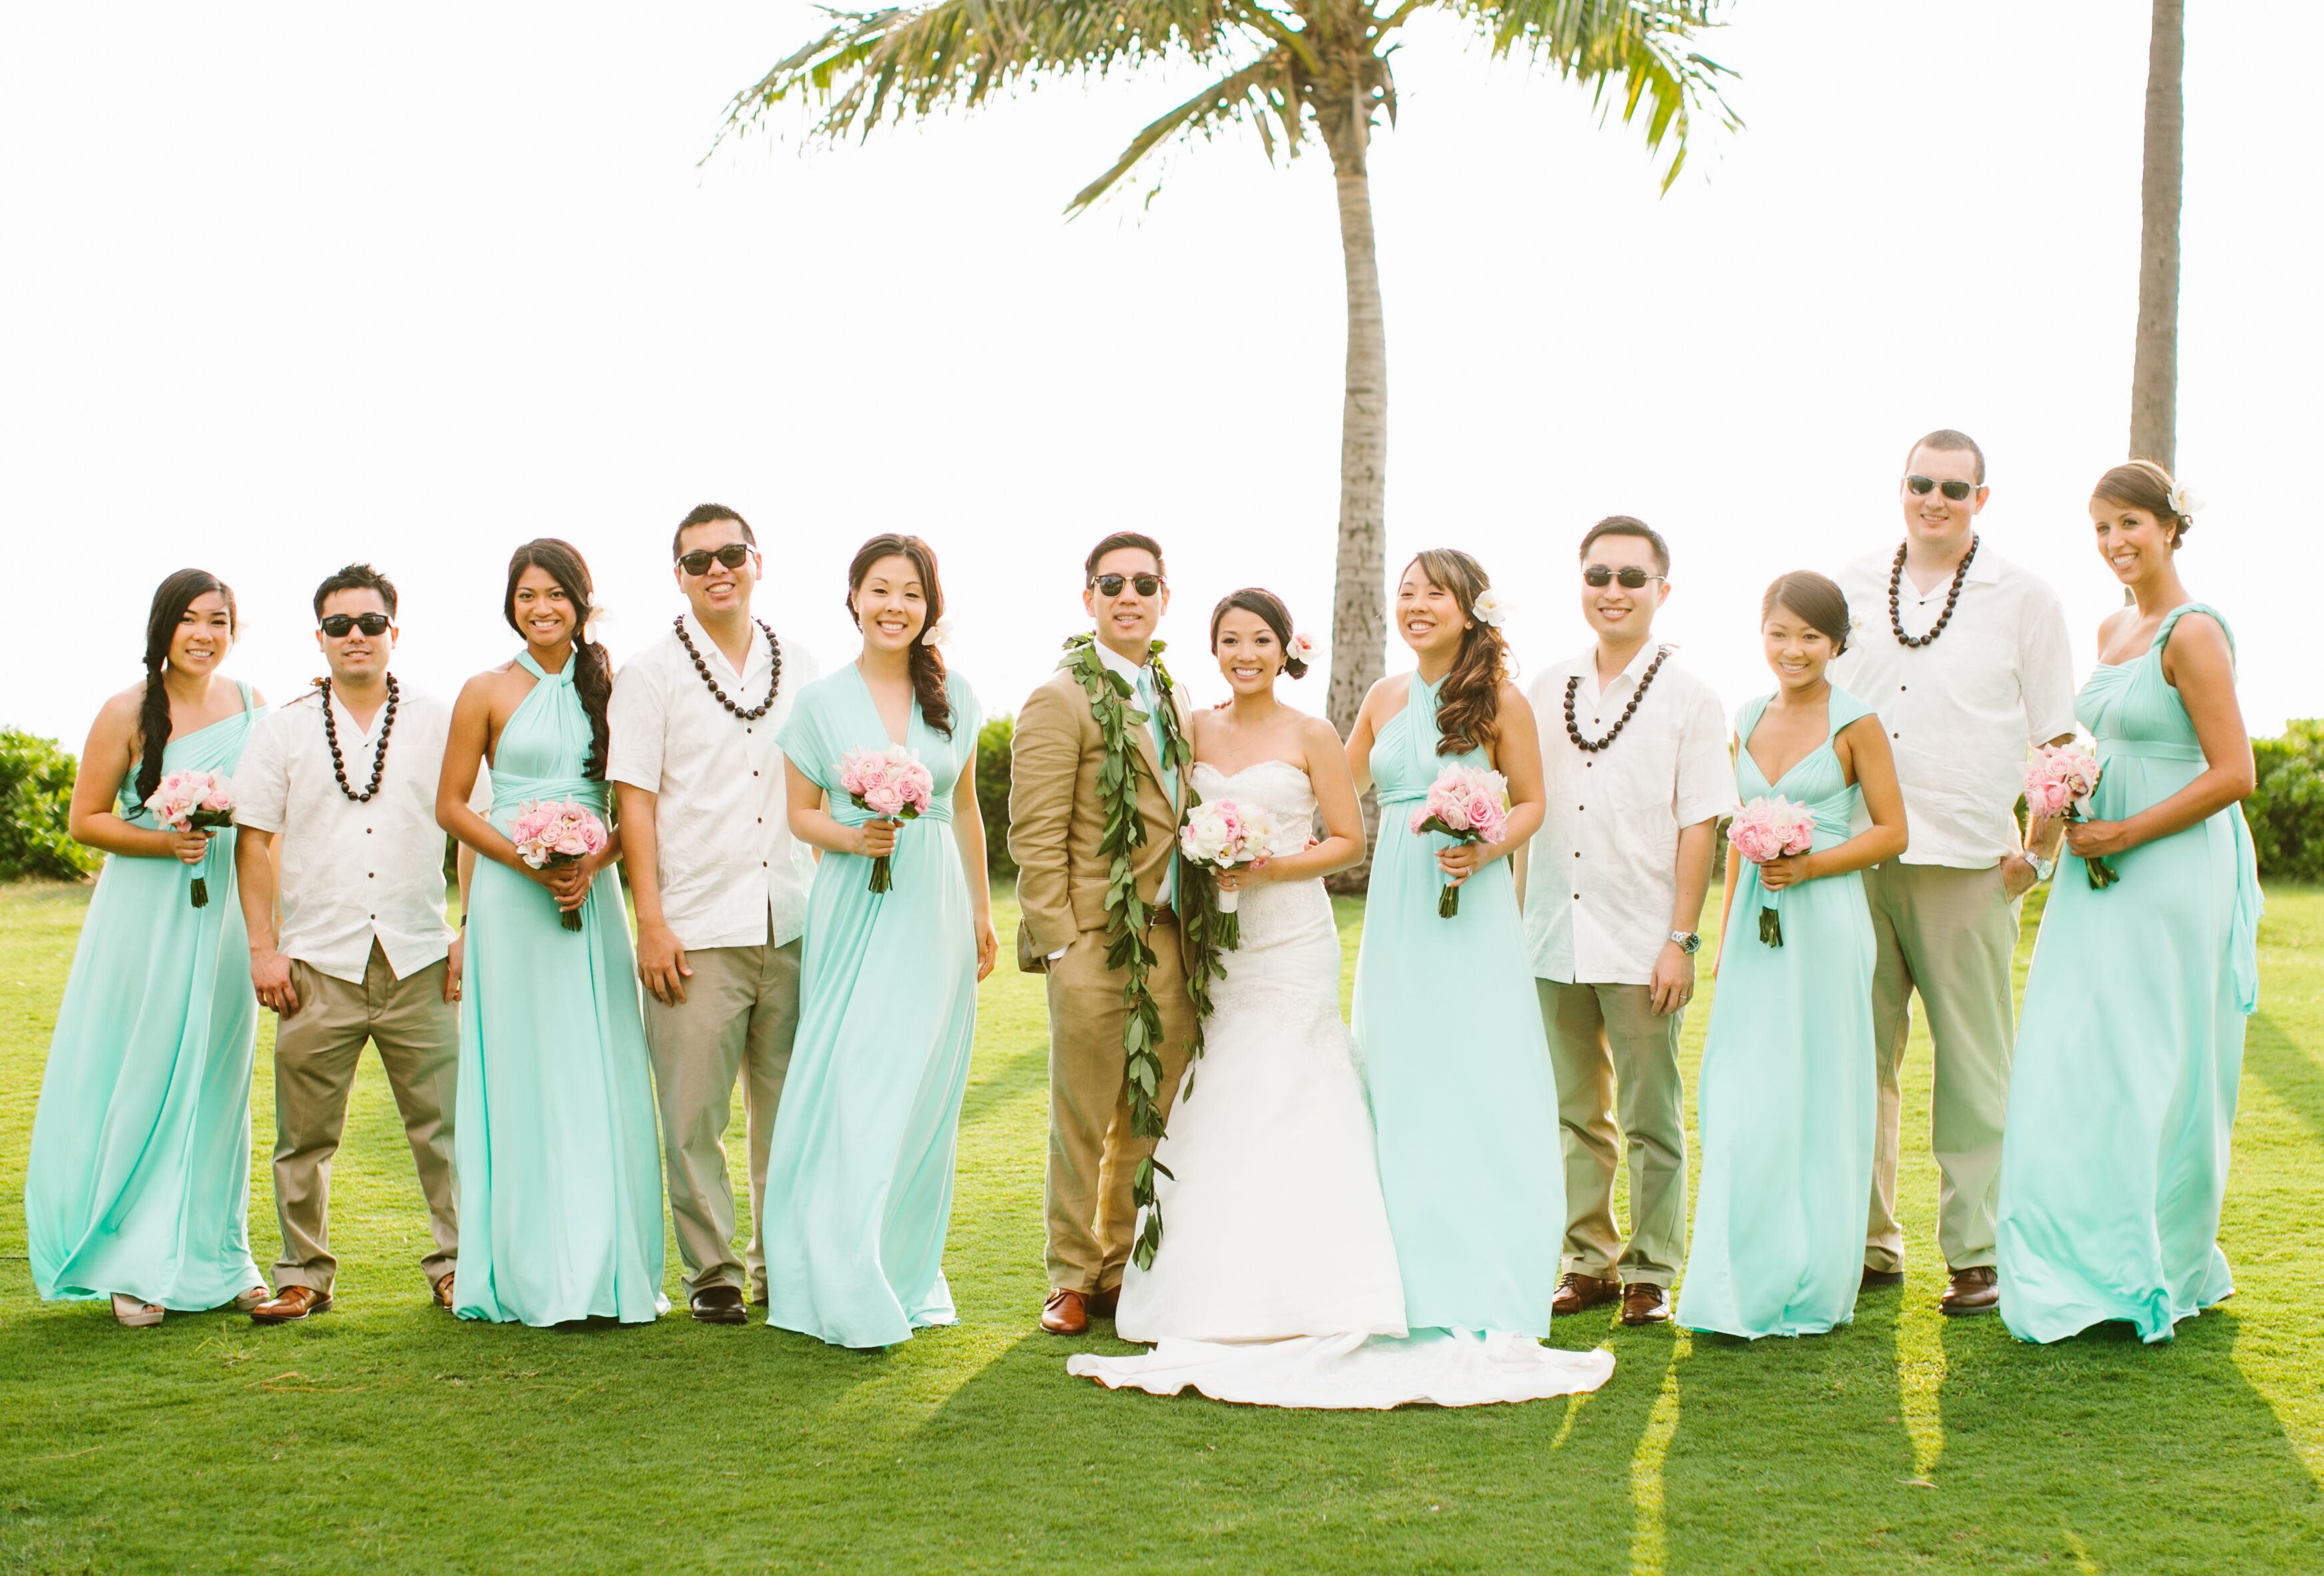 Traditional Hawaiian Wedding Gifts: Green And Tan Wedding Party